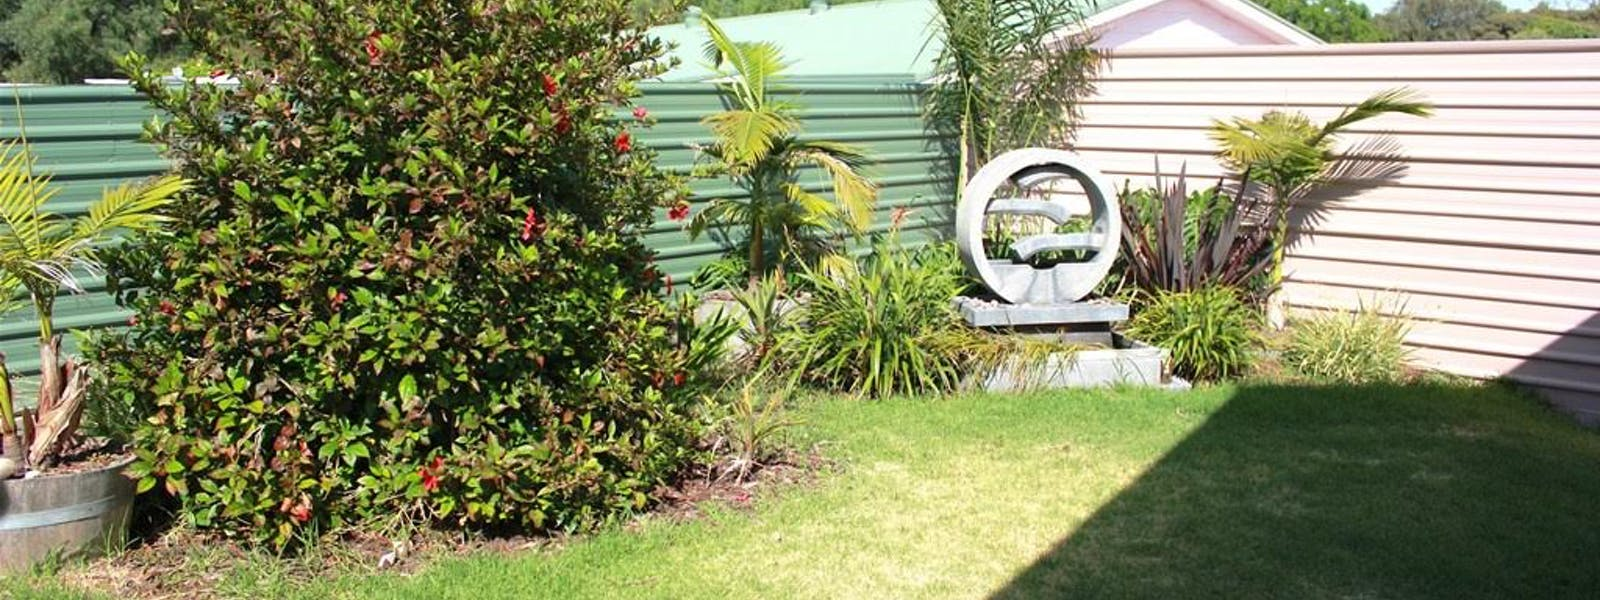 Port Vincent Motel & Apartments Garden Area